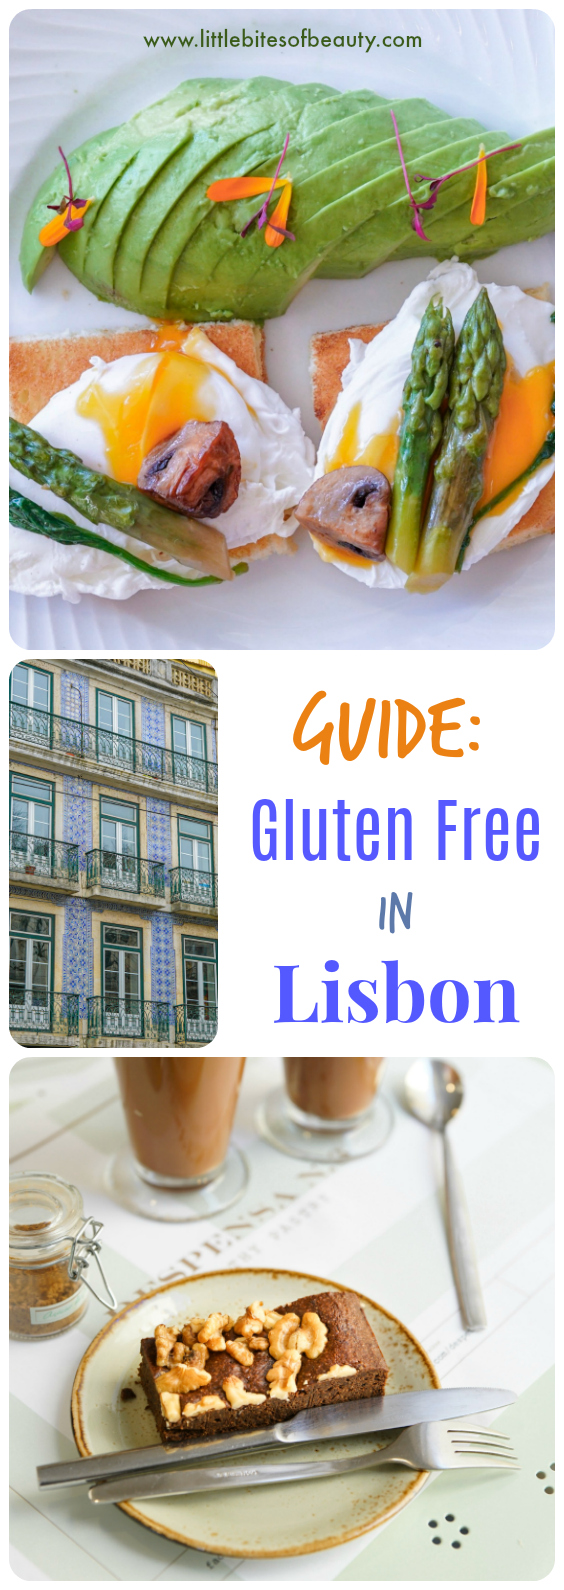 The Ultime Guide to Eating Gluten Free in Lisbon, Portugal